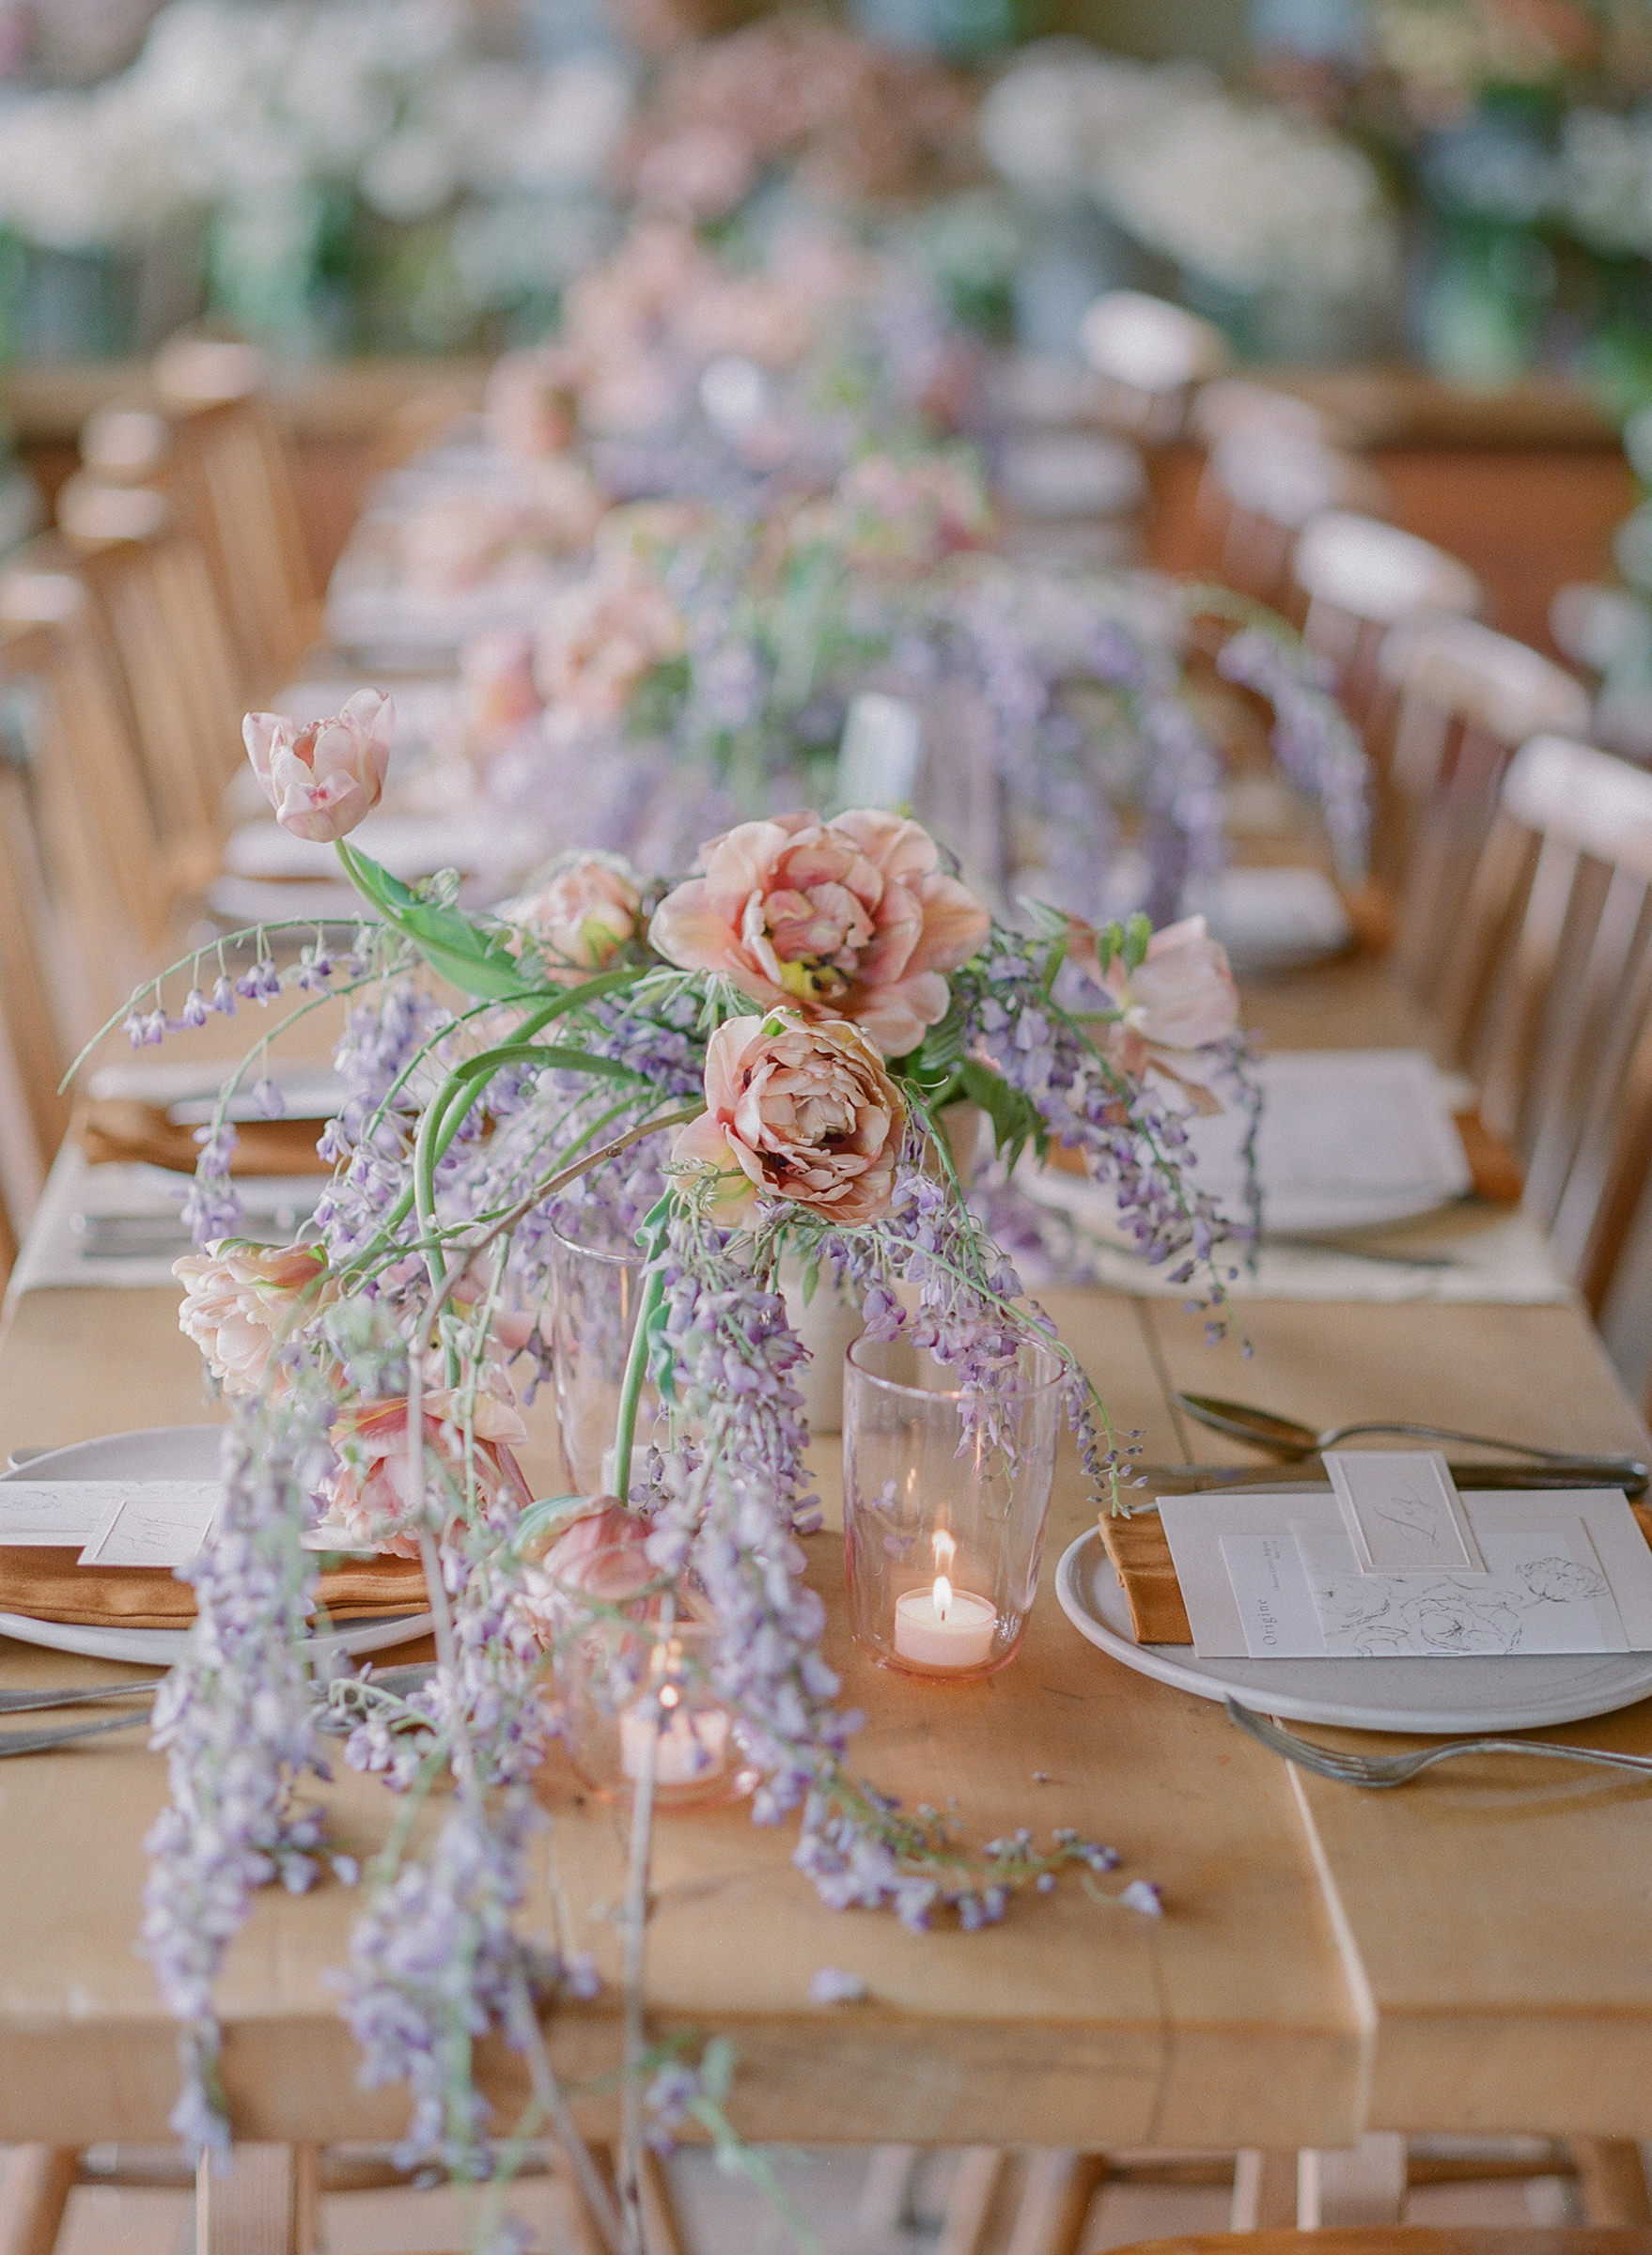 Centerpieces of wisteria and tulips - photo by Corbin Gurkin